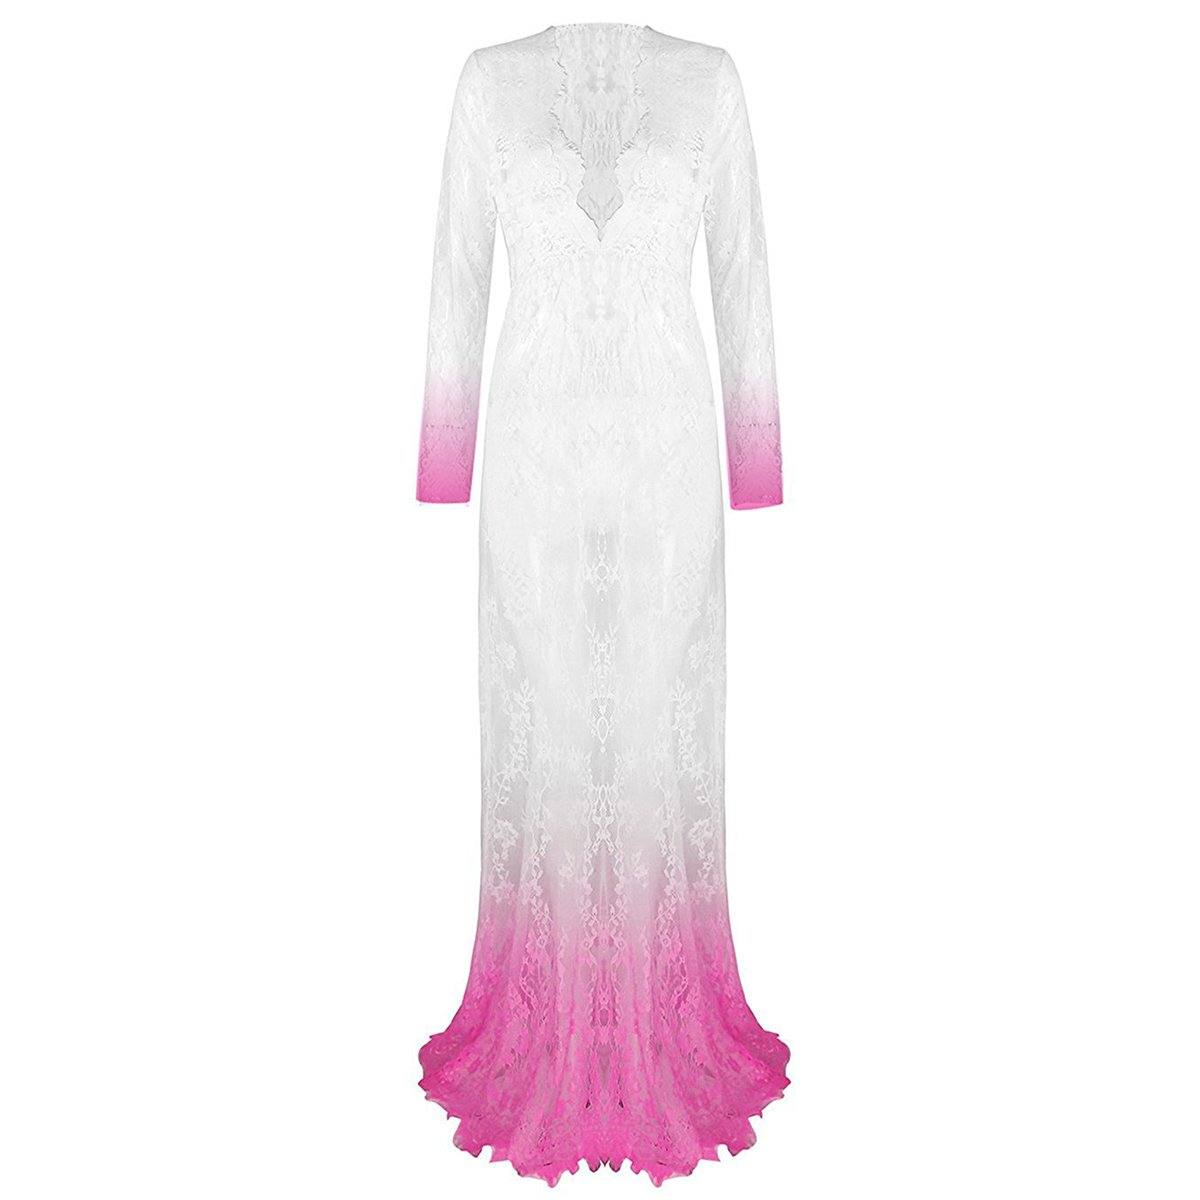 Maternity Sexy Deep V-Neck Long Sleeve Lace See-Through Maxi Dress for Beach Photo Shoot Party Baby Shower Photography Gown Dip Dyeing White+Rose 3XL